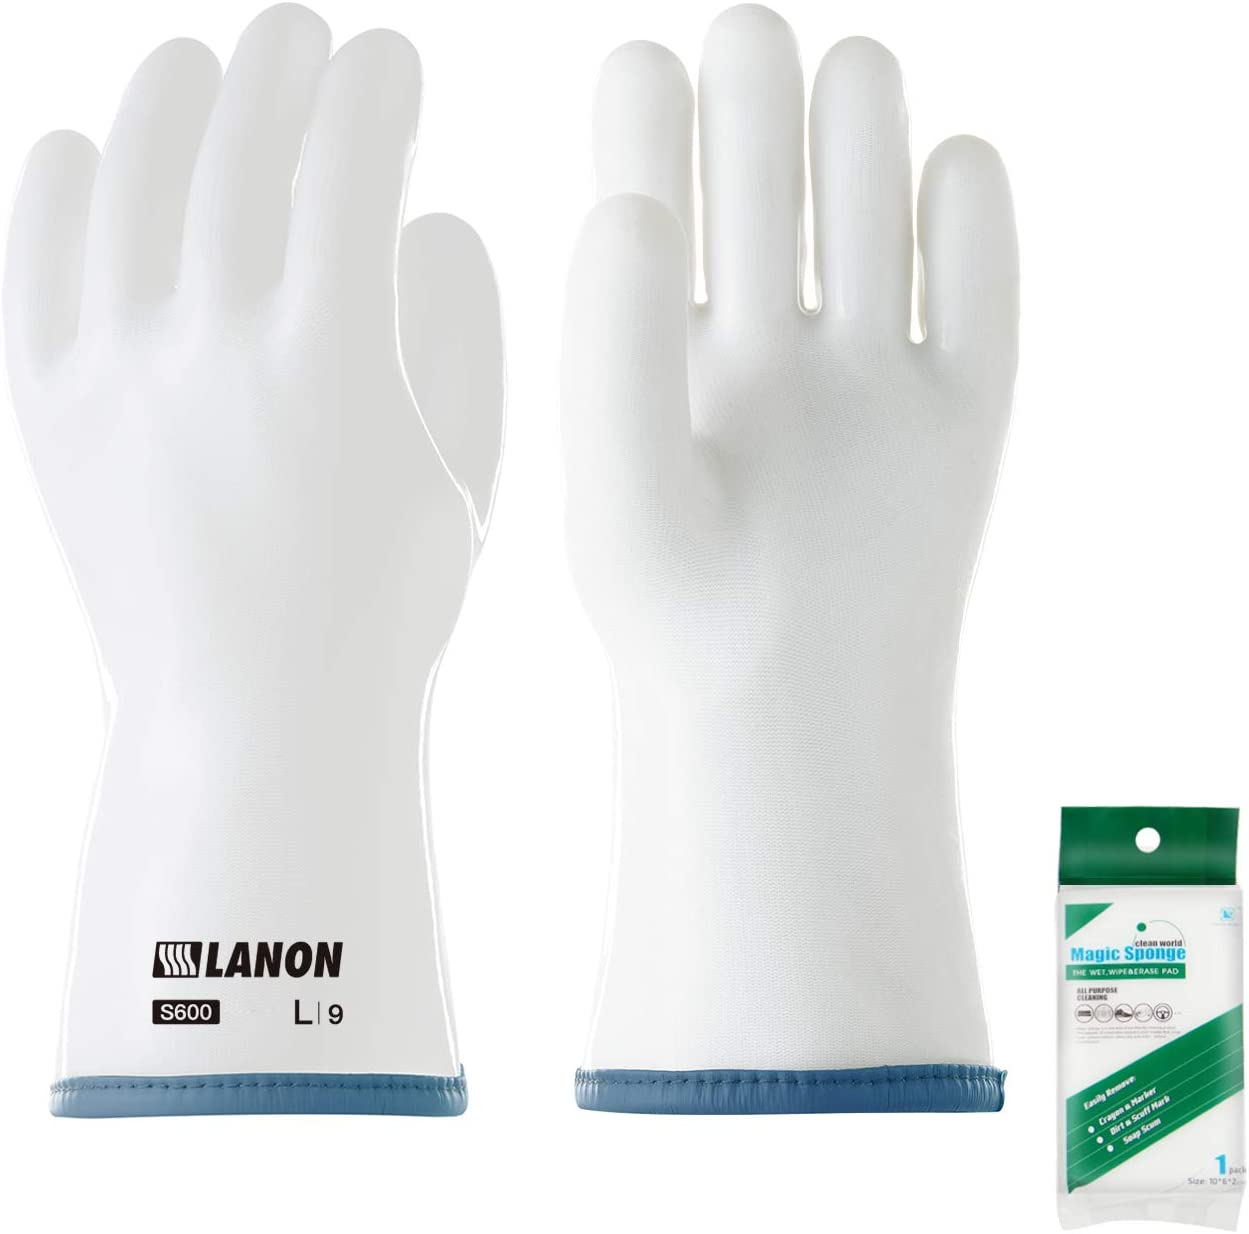 LANON Protection Heat Resistant Oven Mitts with Fingers for Barbecue, Baking, Food Frying, Liquid Silicone Grill Glove, BPA Free Bonus Cleaning Sponge, Medium